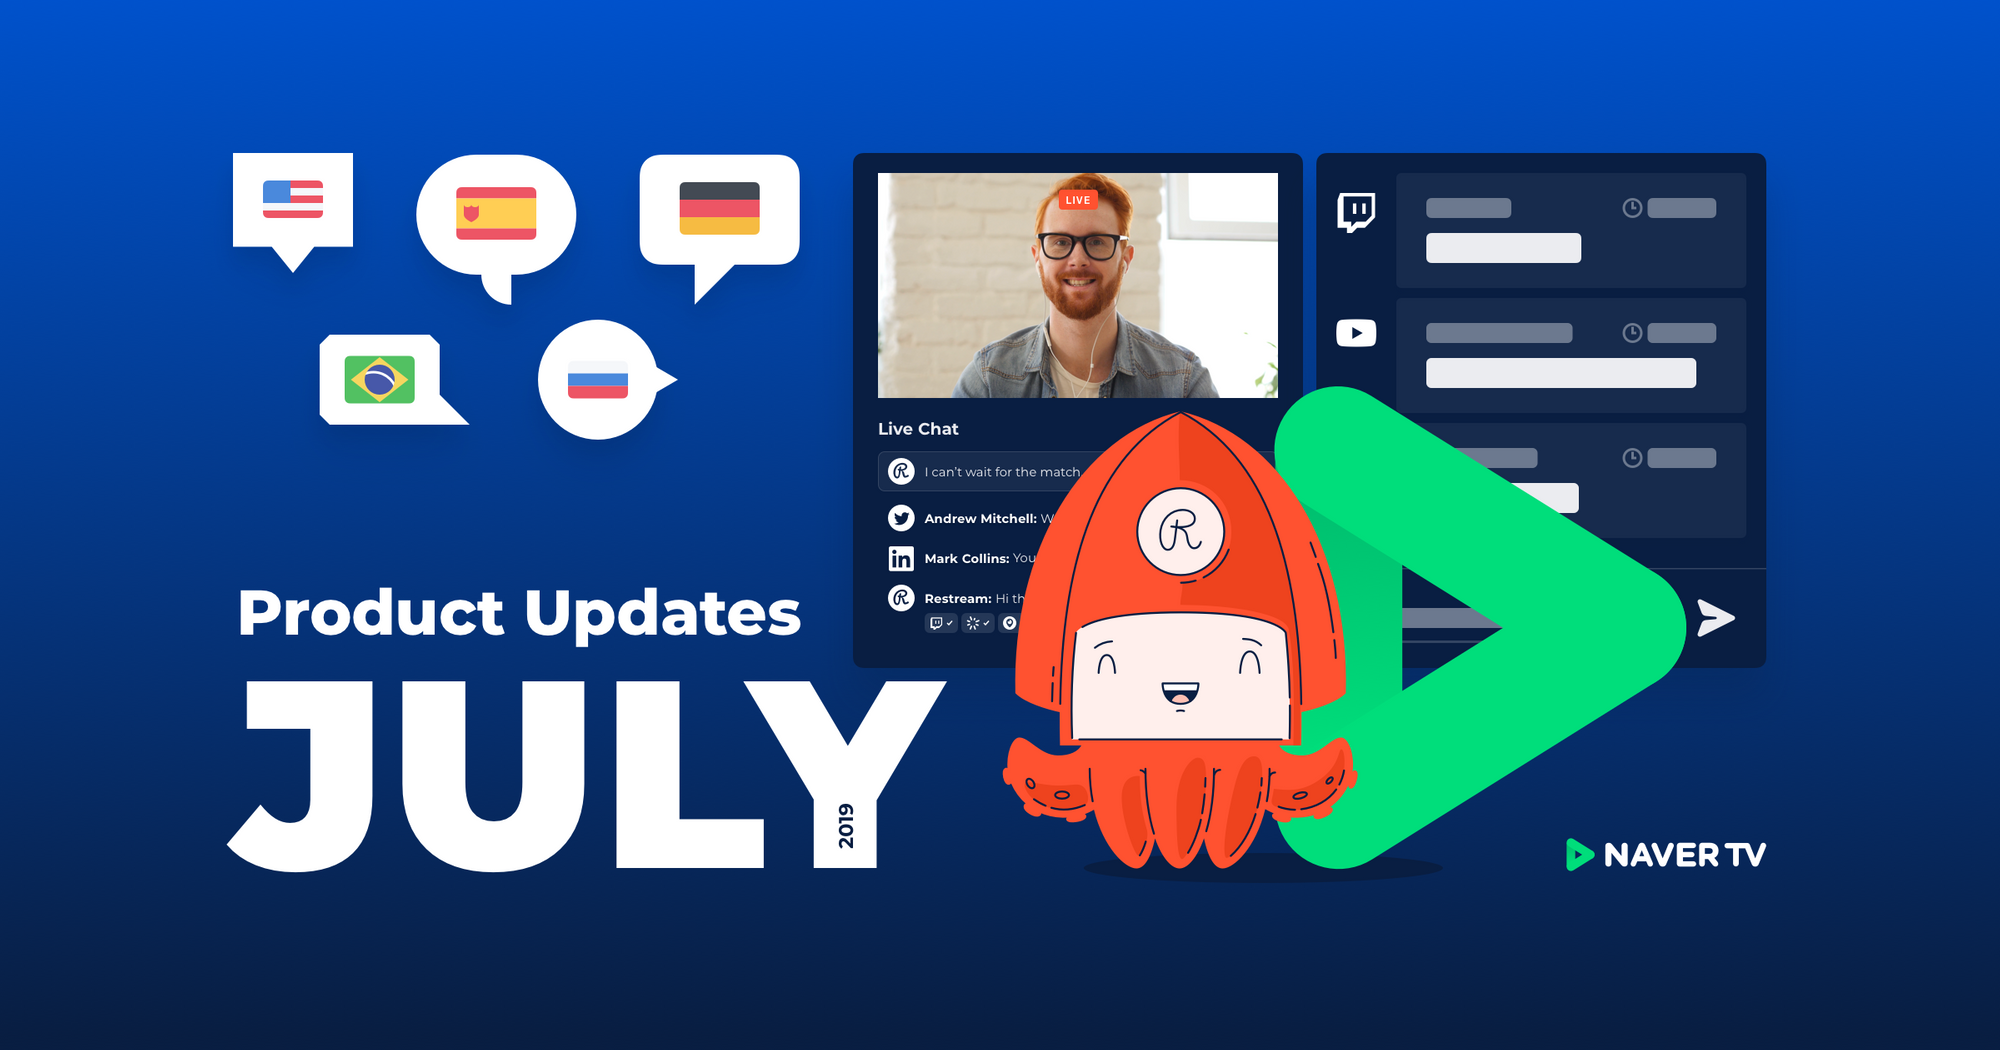 Restream July product updates